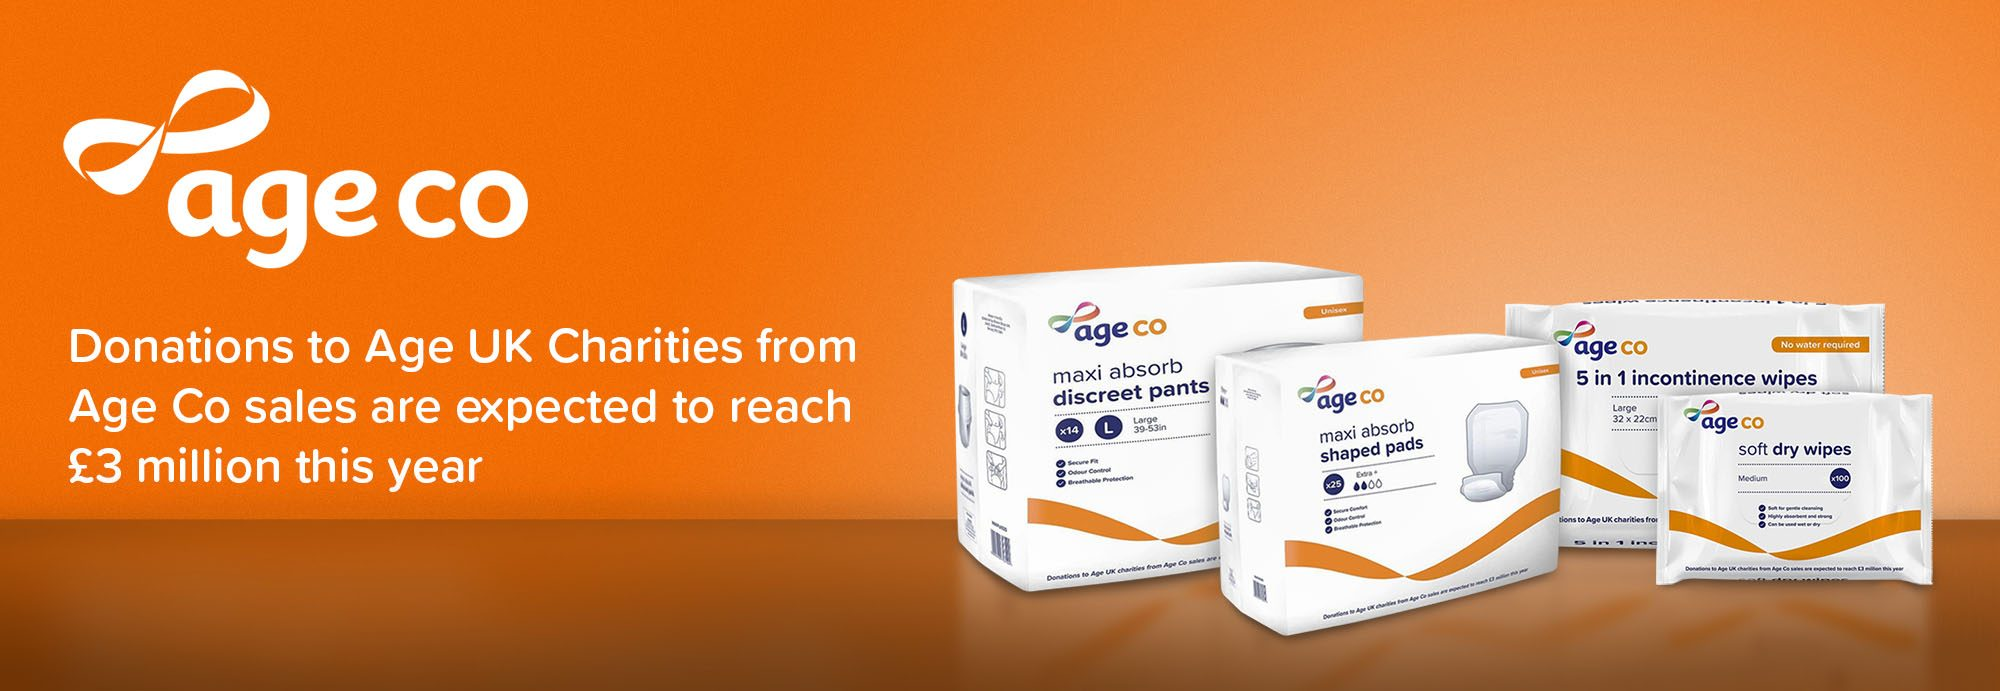 Age Co Incontinence